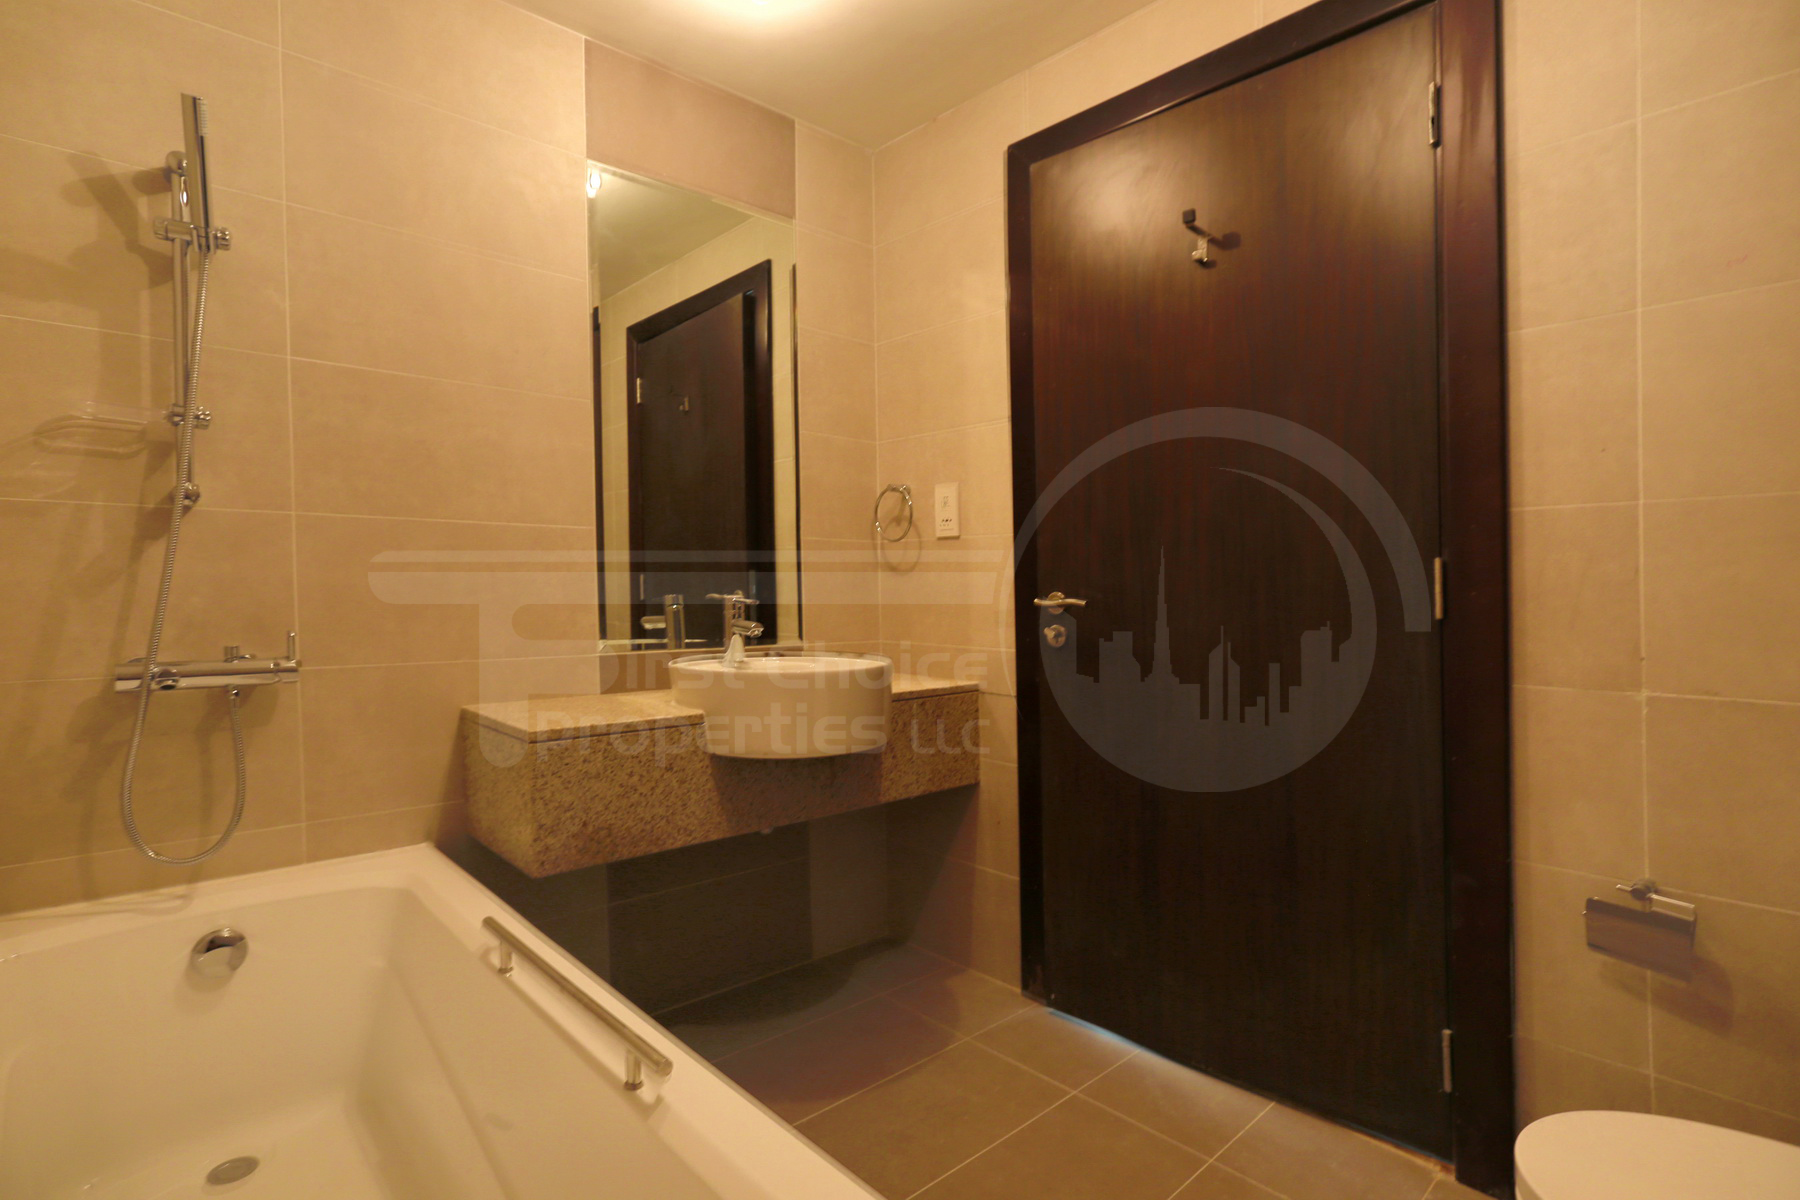 3BR Apartment - Abu Dhabi - UAE - Al Reem Island - City of Lights - C10 Building (47).JPG